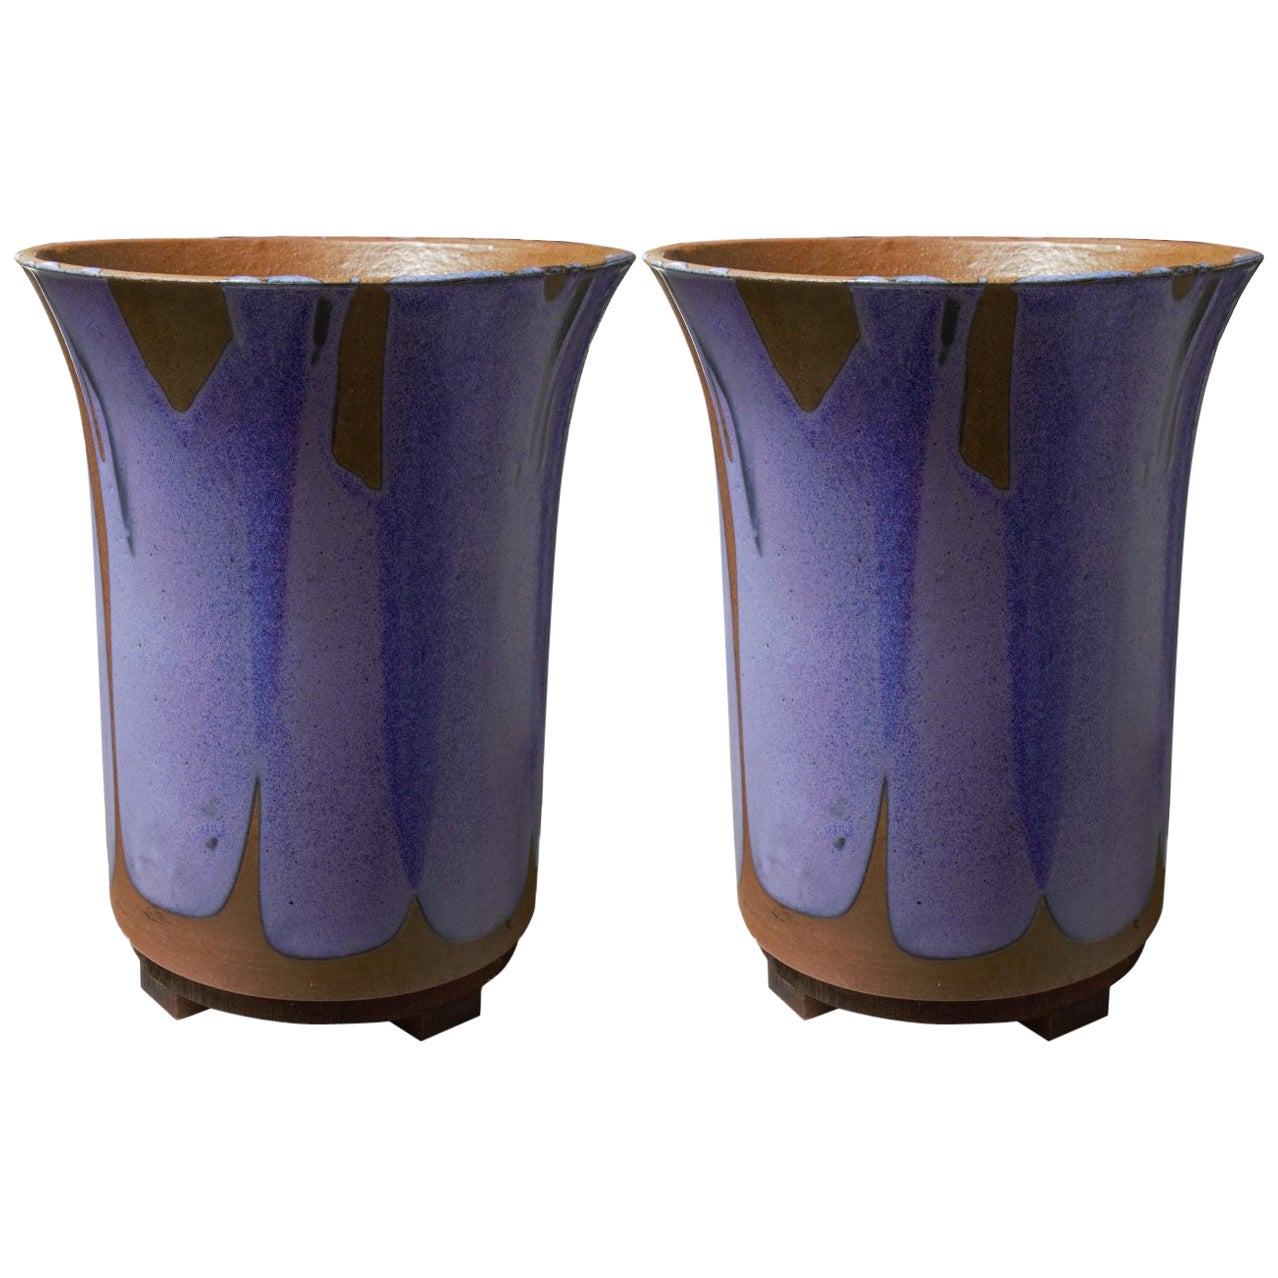 Purple Flame, Glazed Indoor Planters by David Cressey